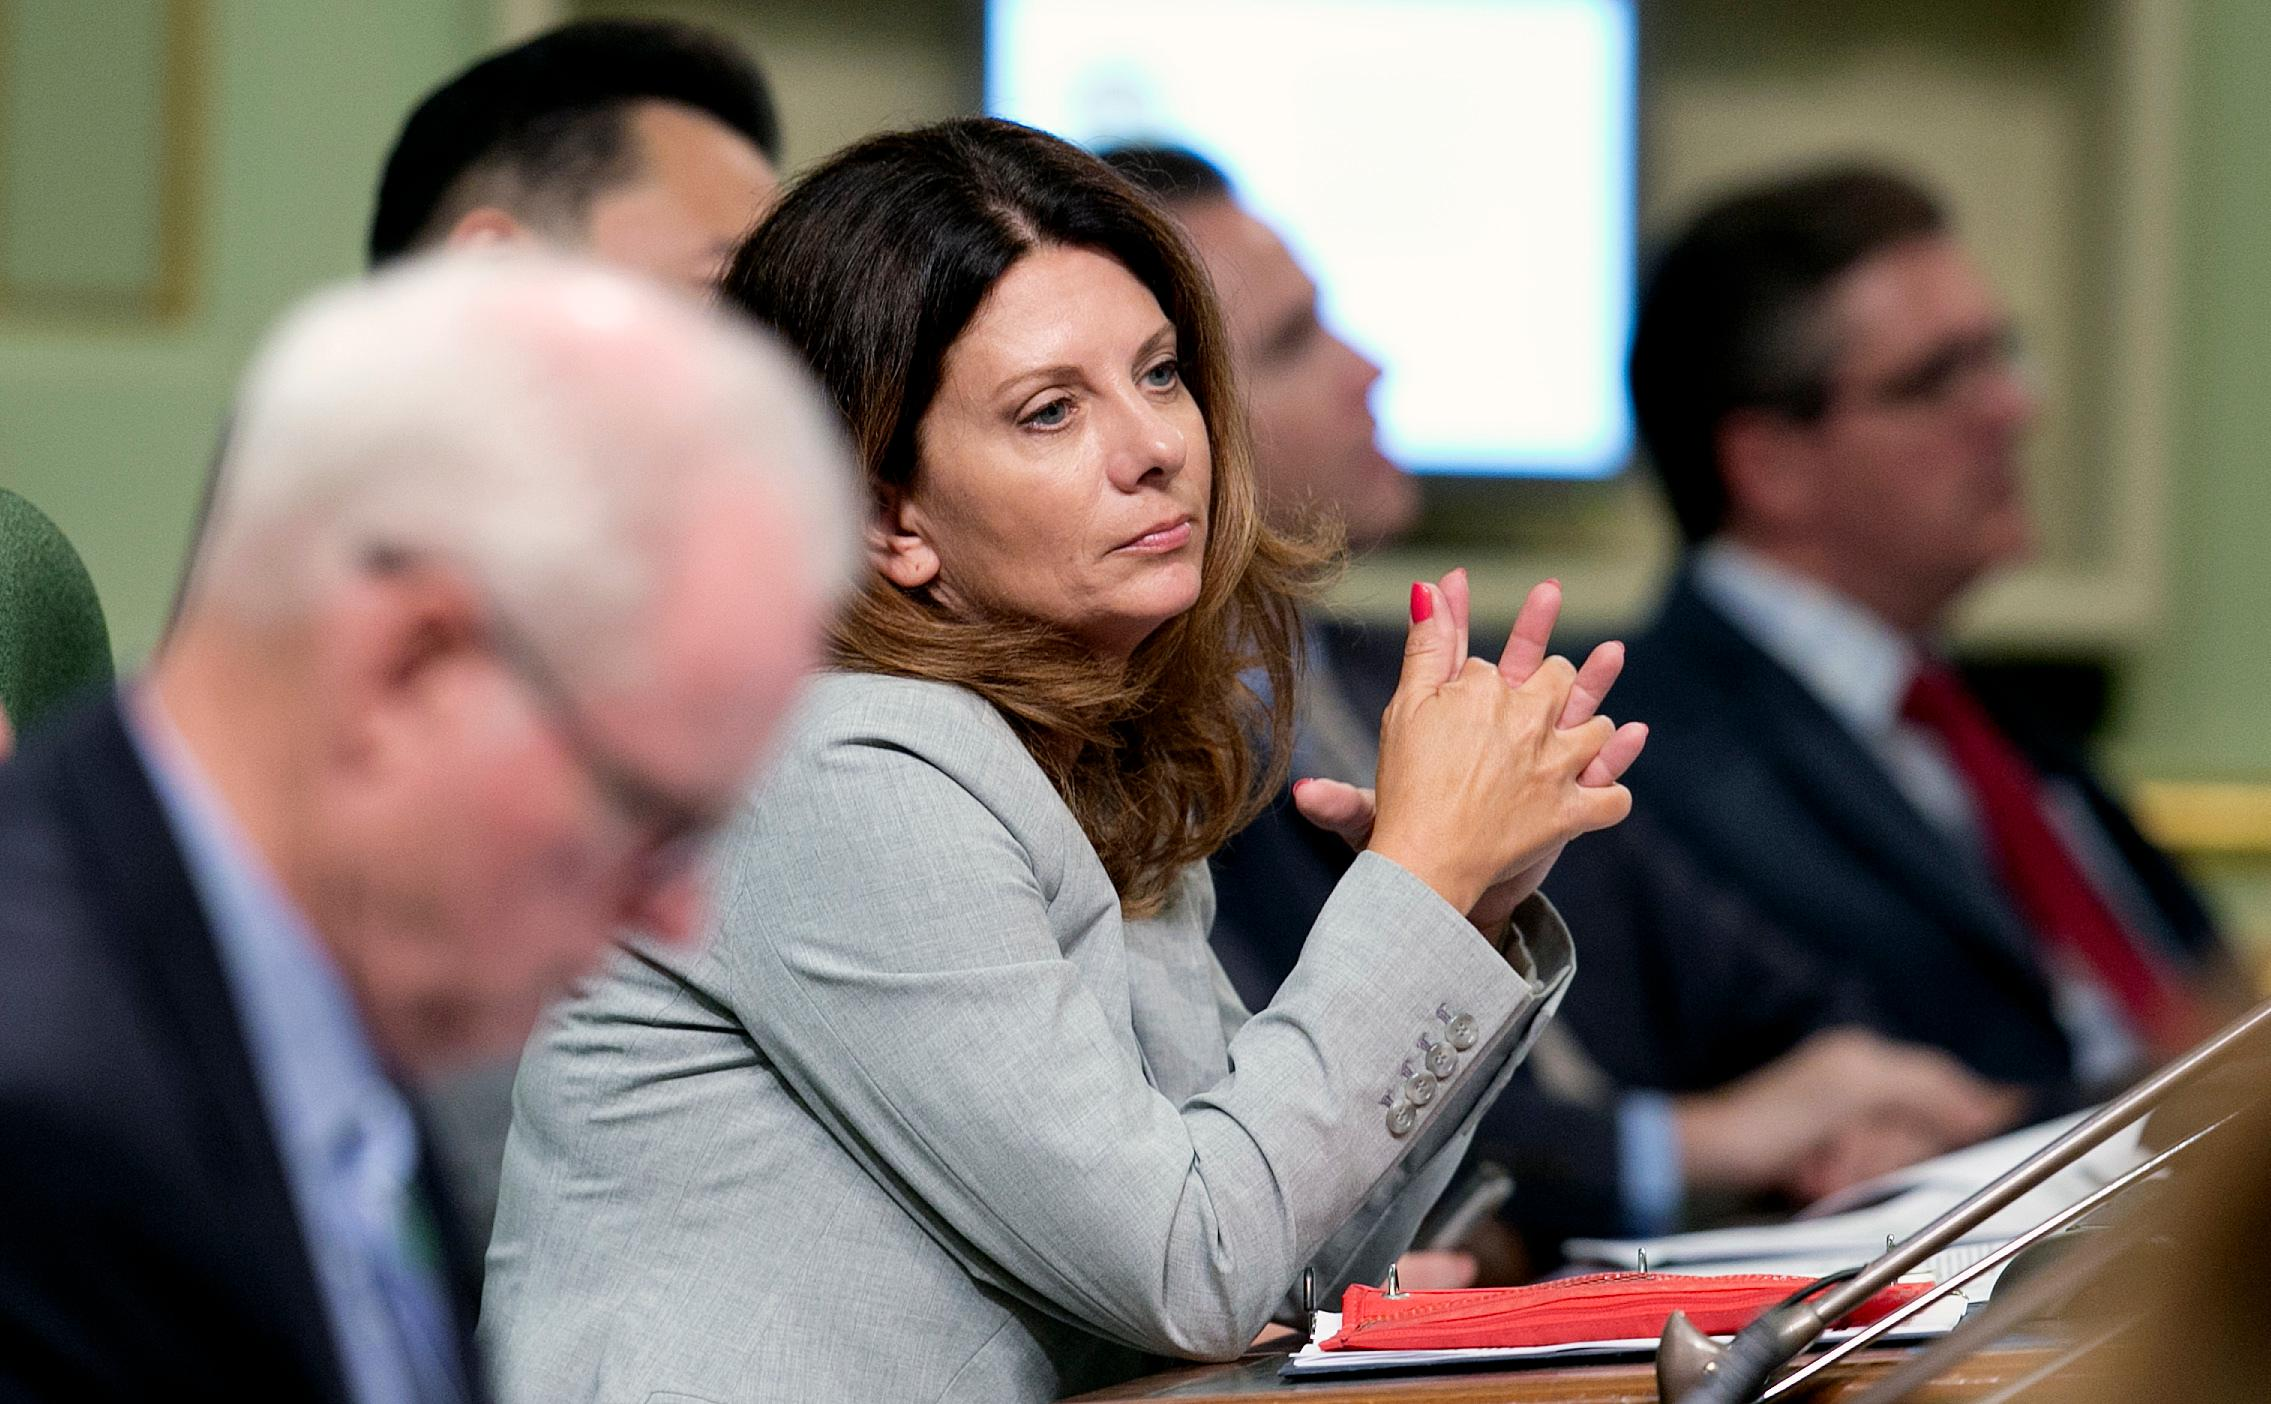 FILE -- In this Aug. 21, 2017, file photo, Assemblywoman Melissa Melendez, R-Lake Elsinore, sits at the Capitol in Sacramento, Calif. (AP Photo/Rich Pedroncelli, File)